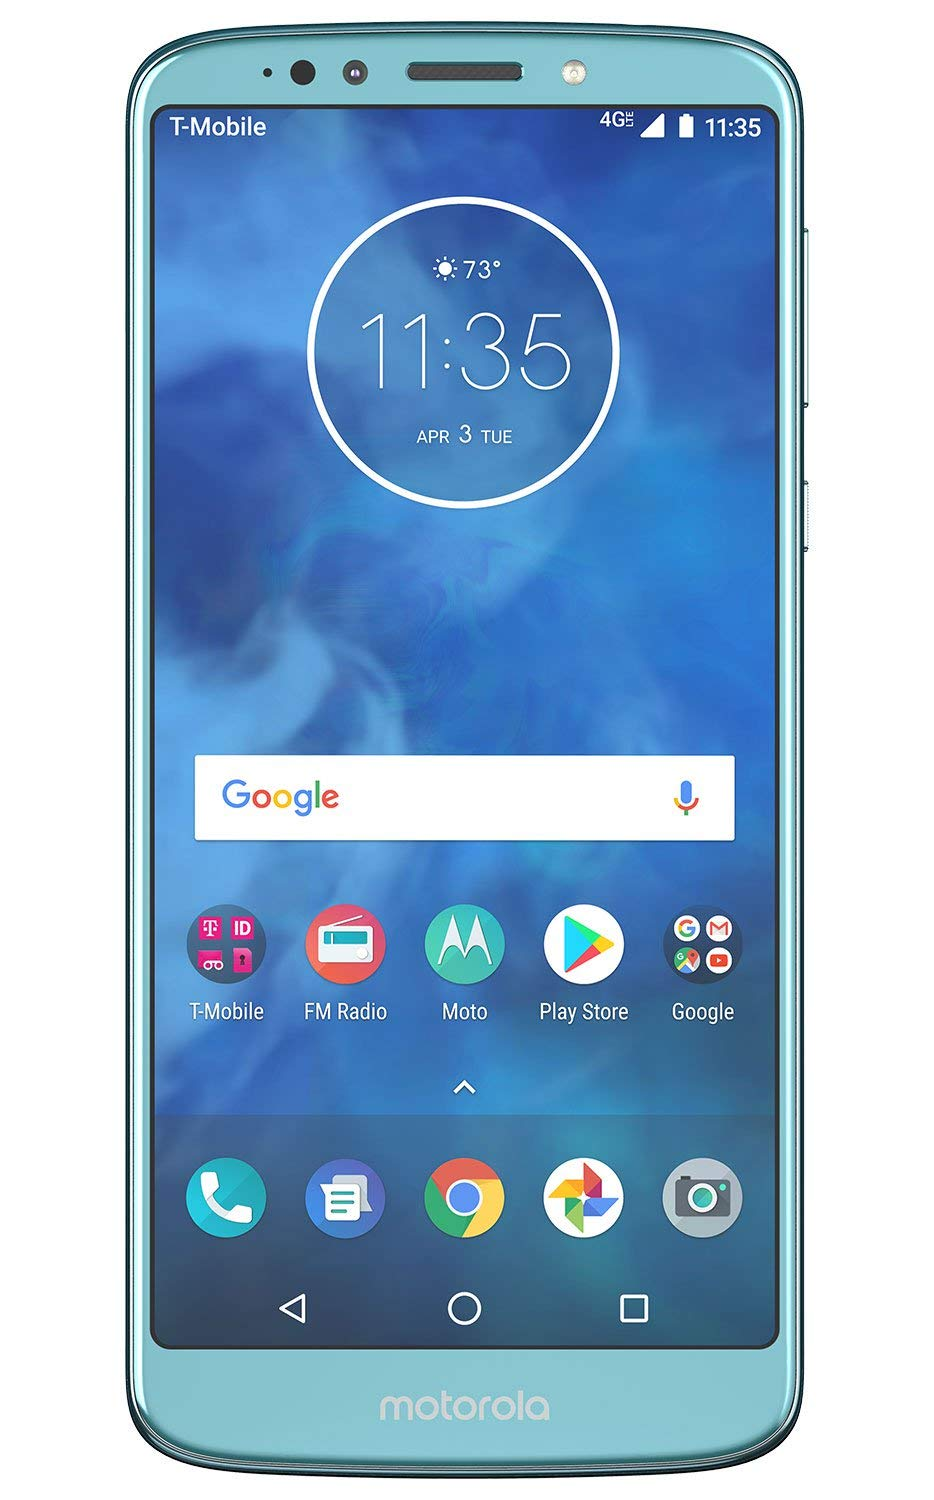 Motorola Moto E5 Plus Xt1924 7 T Mobile Locked 32gb 4g Lte Android Smartphone Blue Refurbished